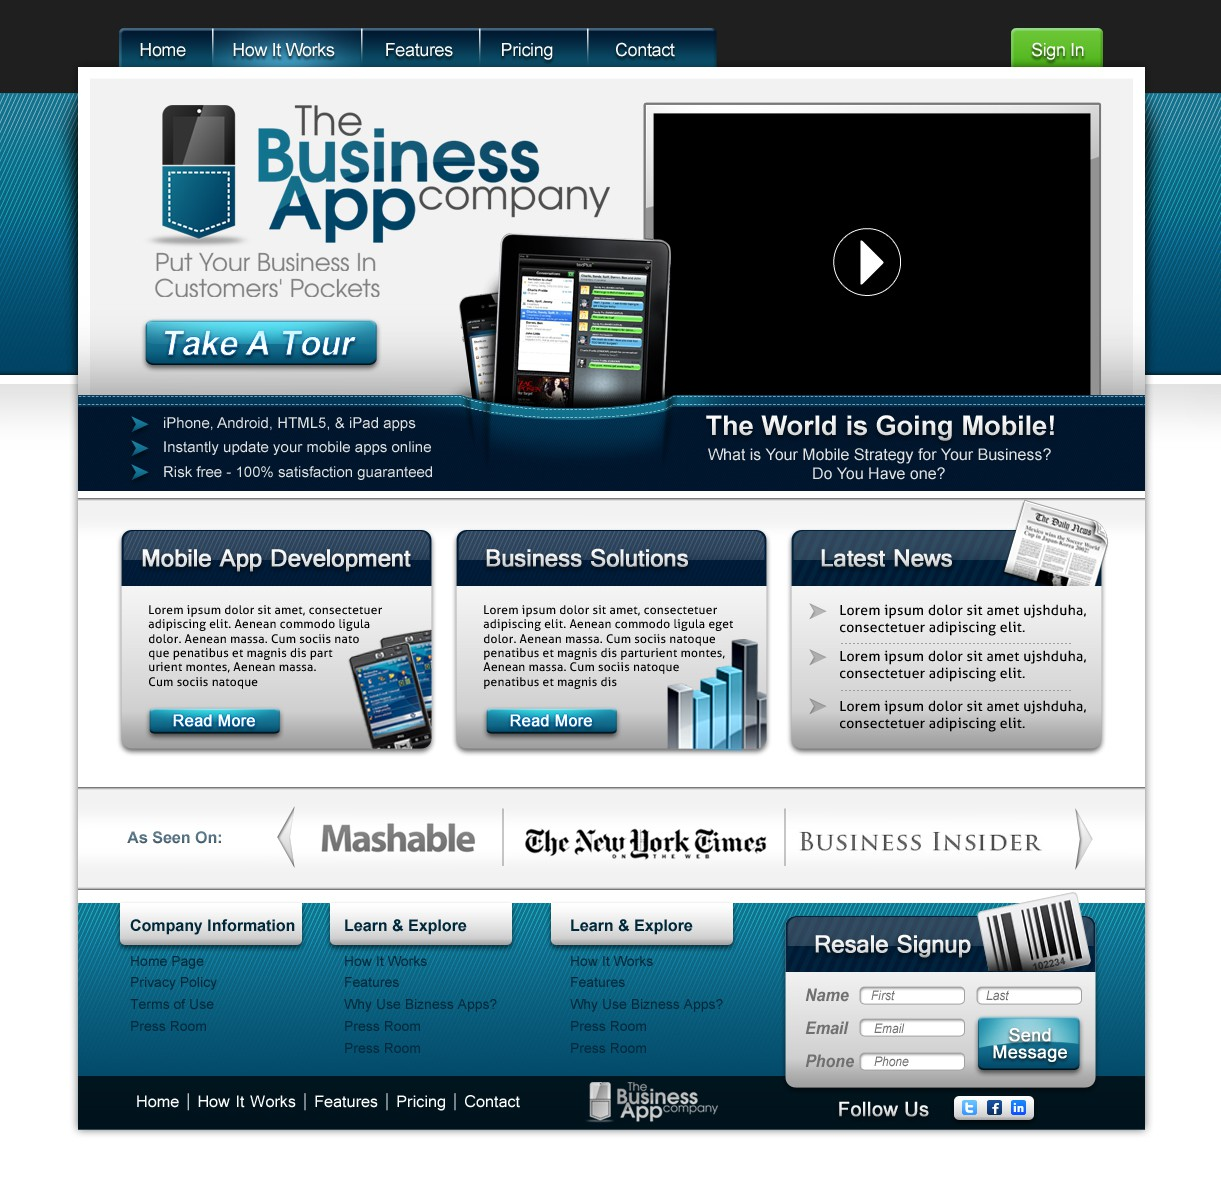 Create the next website design for The Business App Company